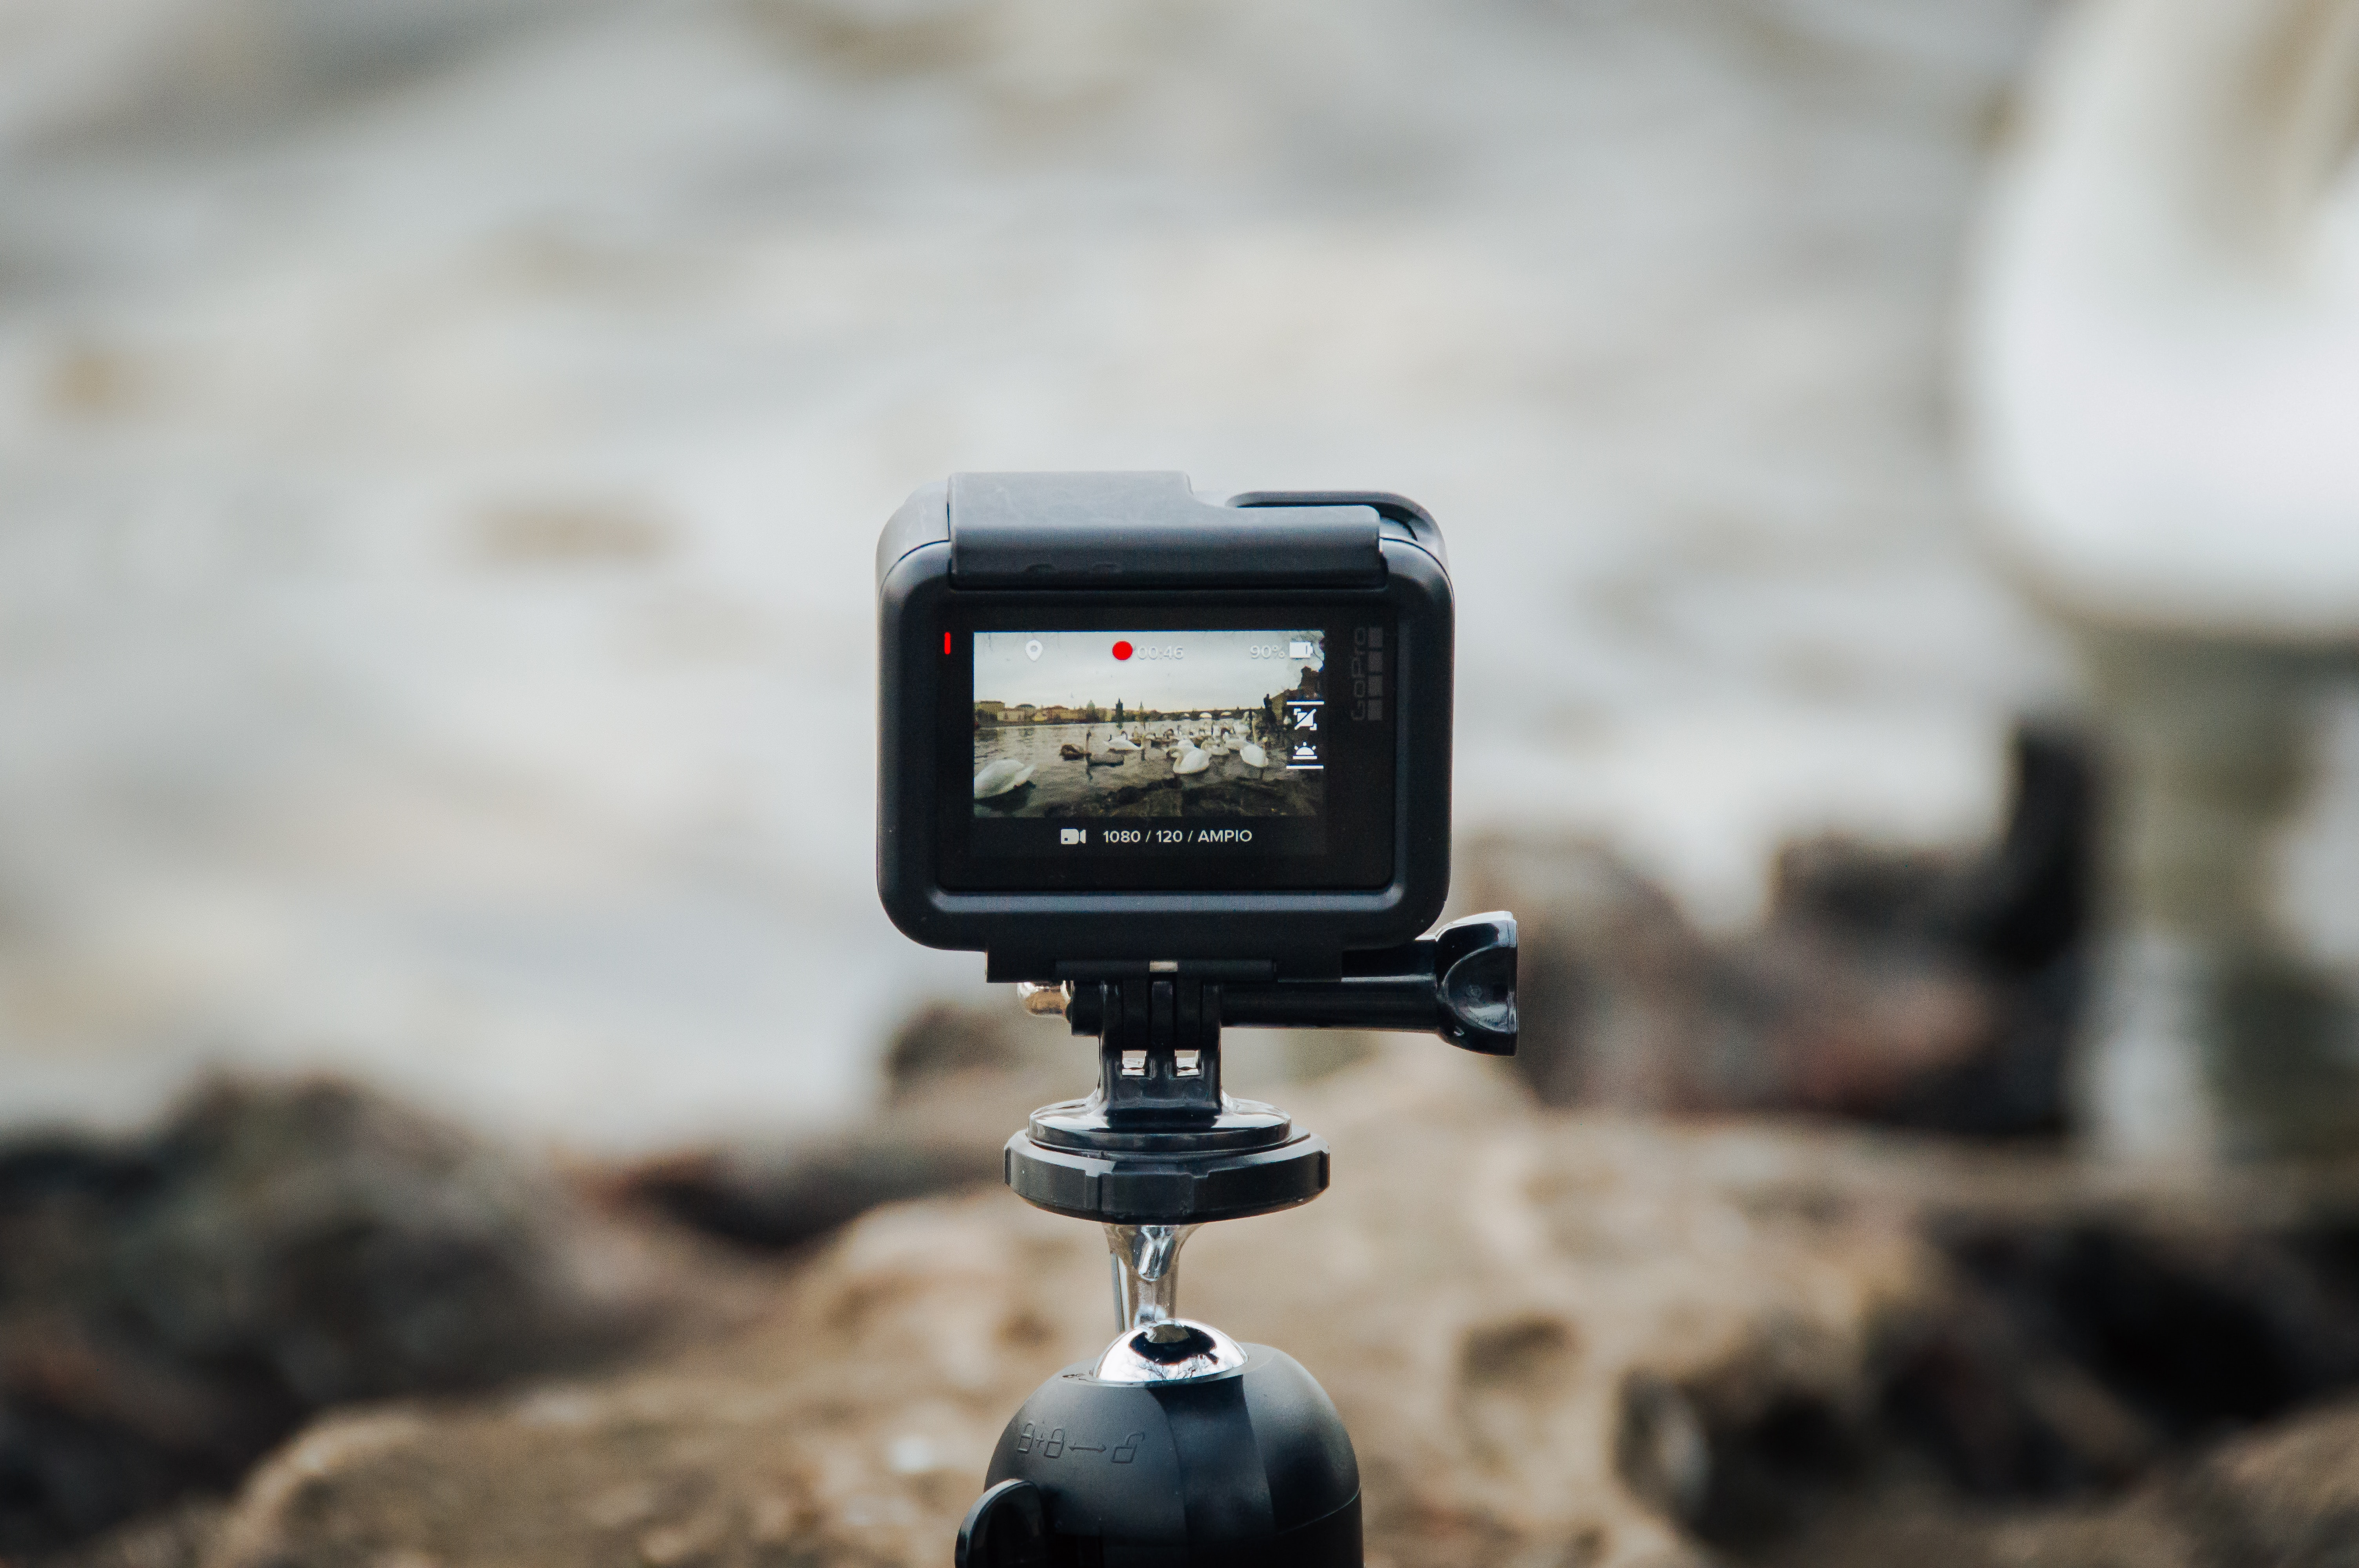 black action camera - 5 Video Editing Tips that All Video Creators Need to Know